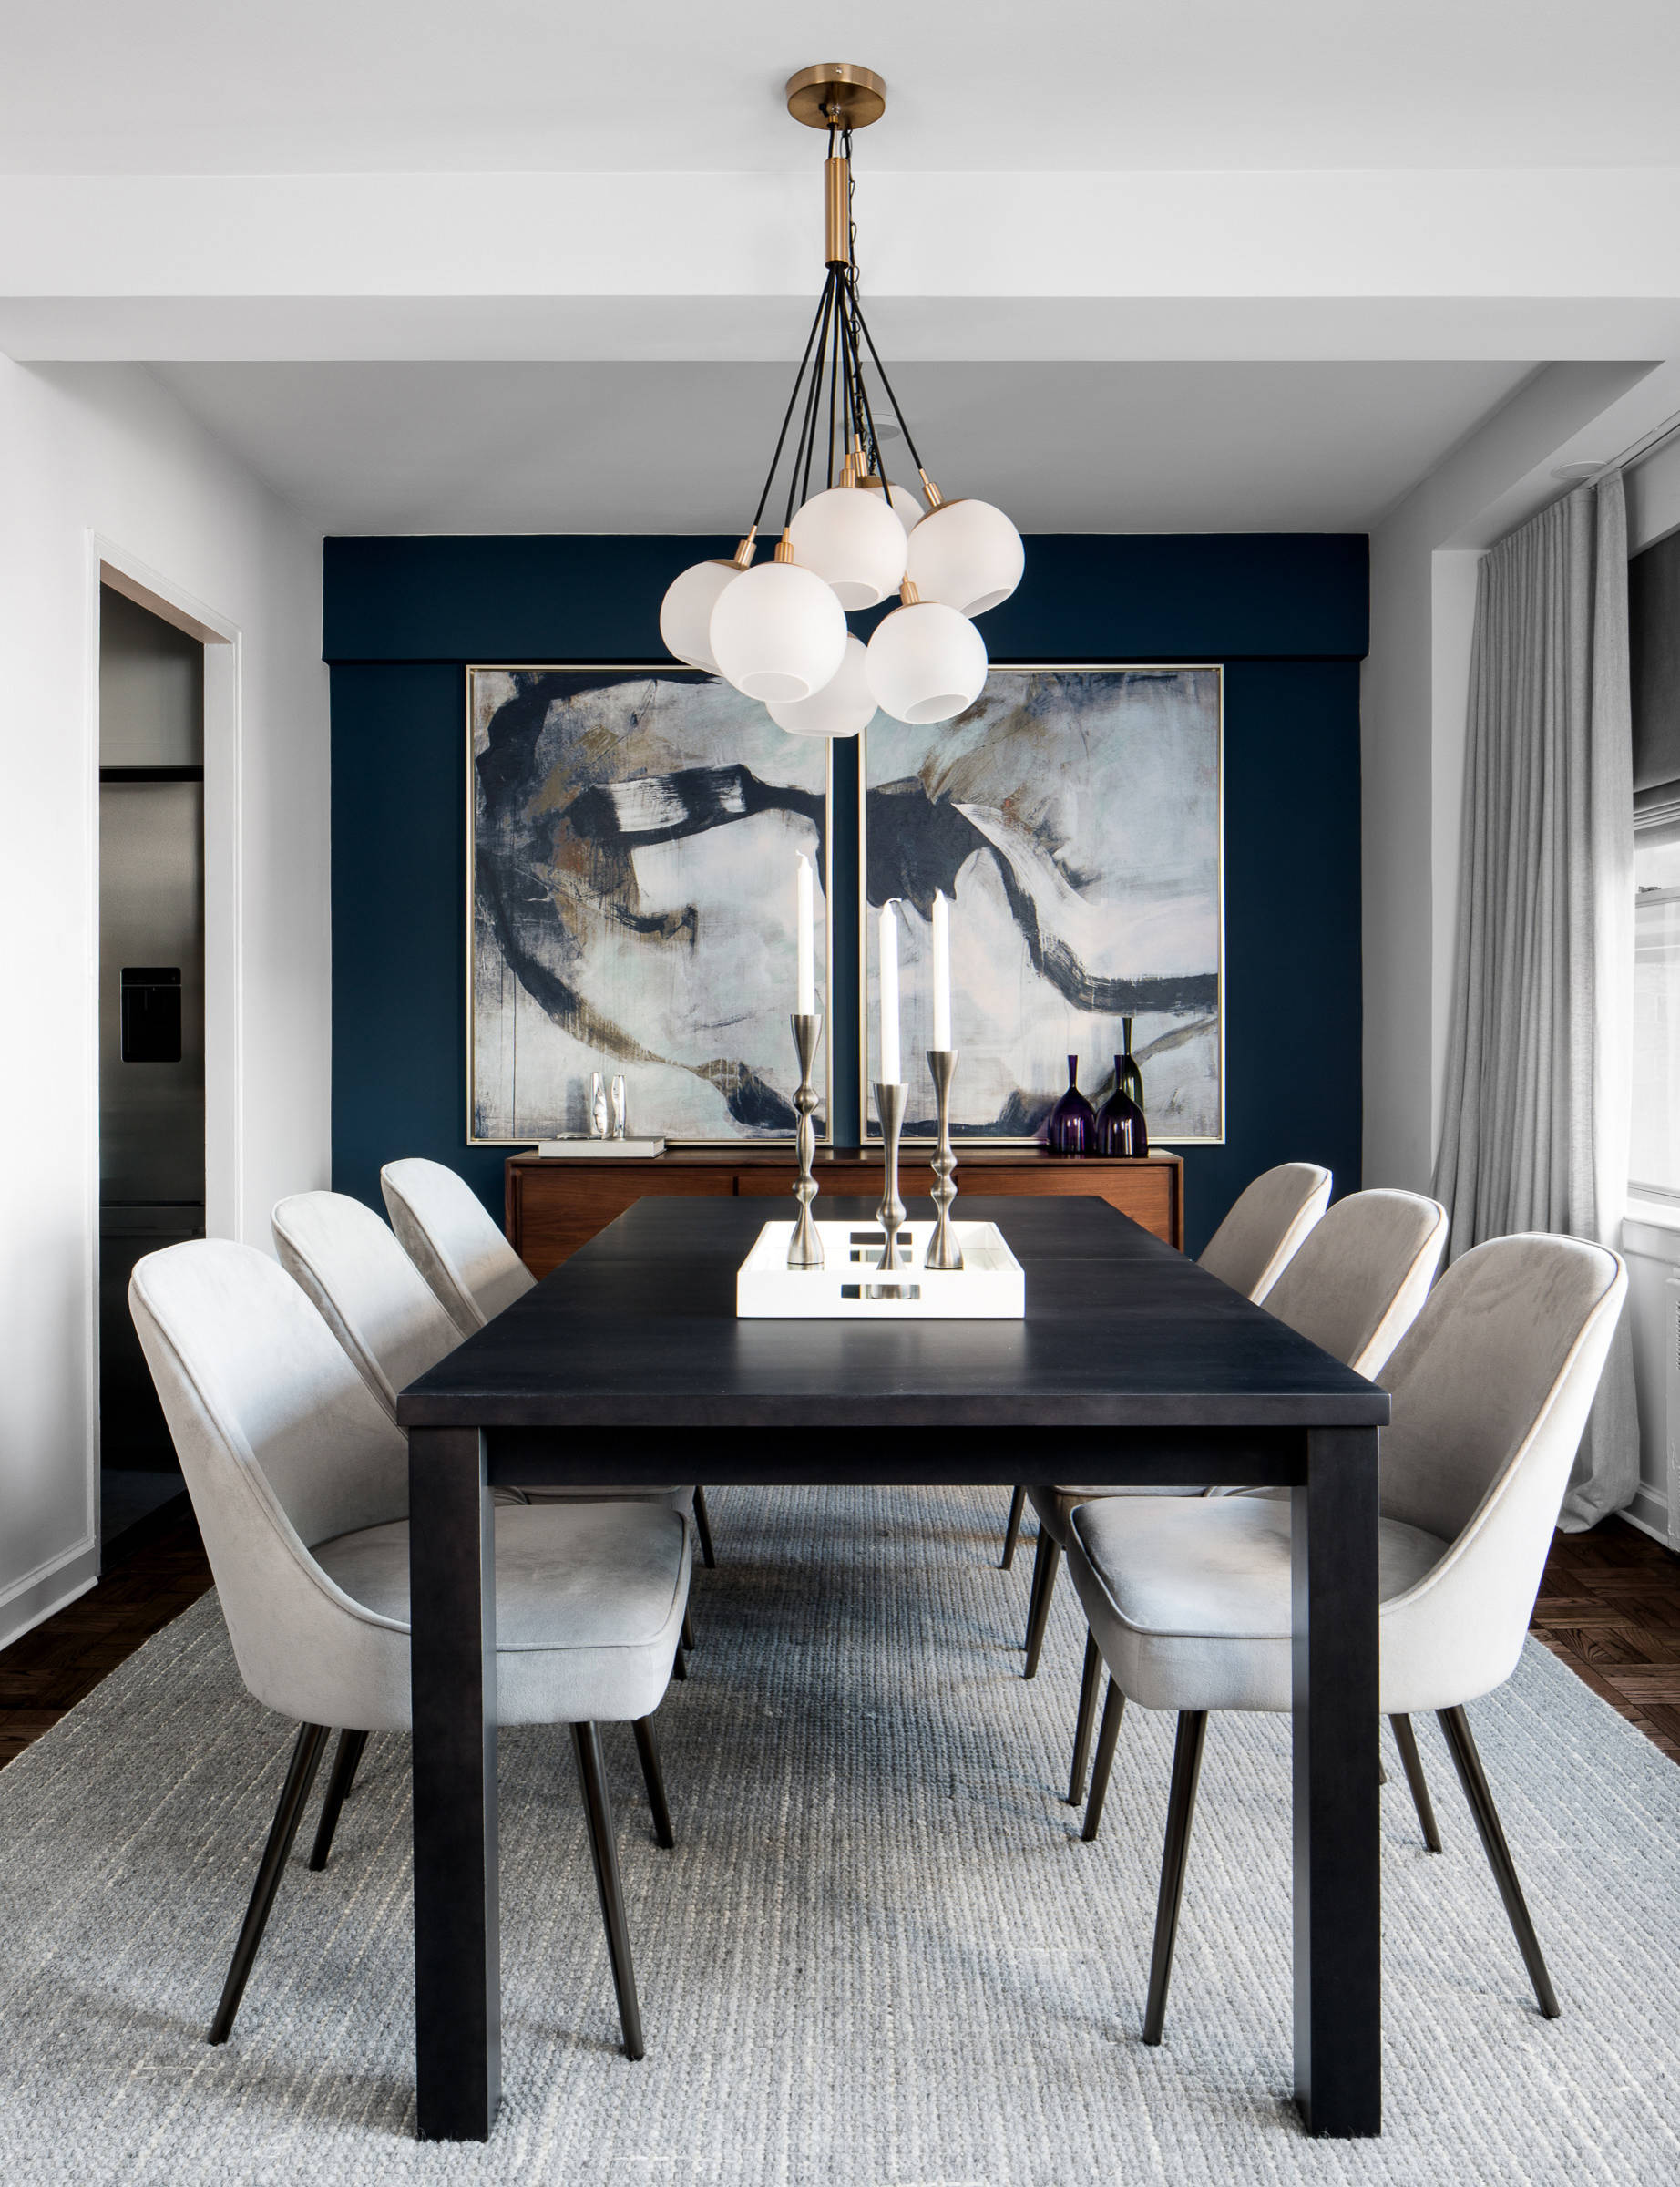 75 Beautiful Enclosed Dining Room Pictures Ideas October 2020 Houzz